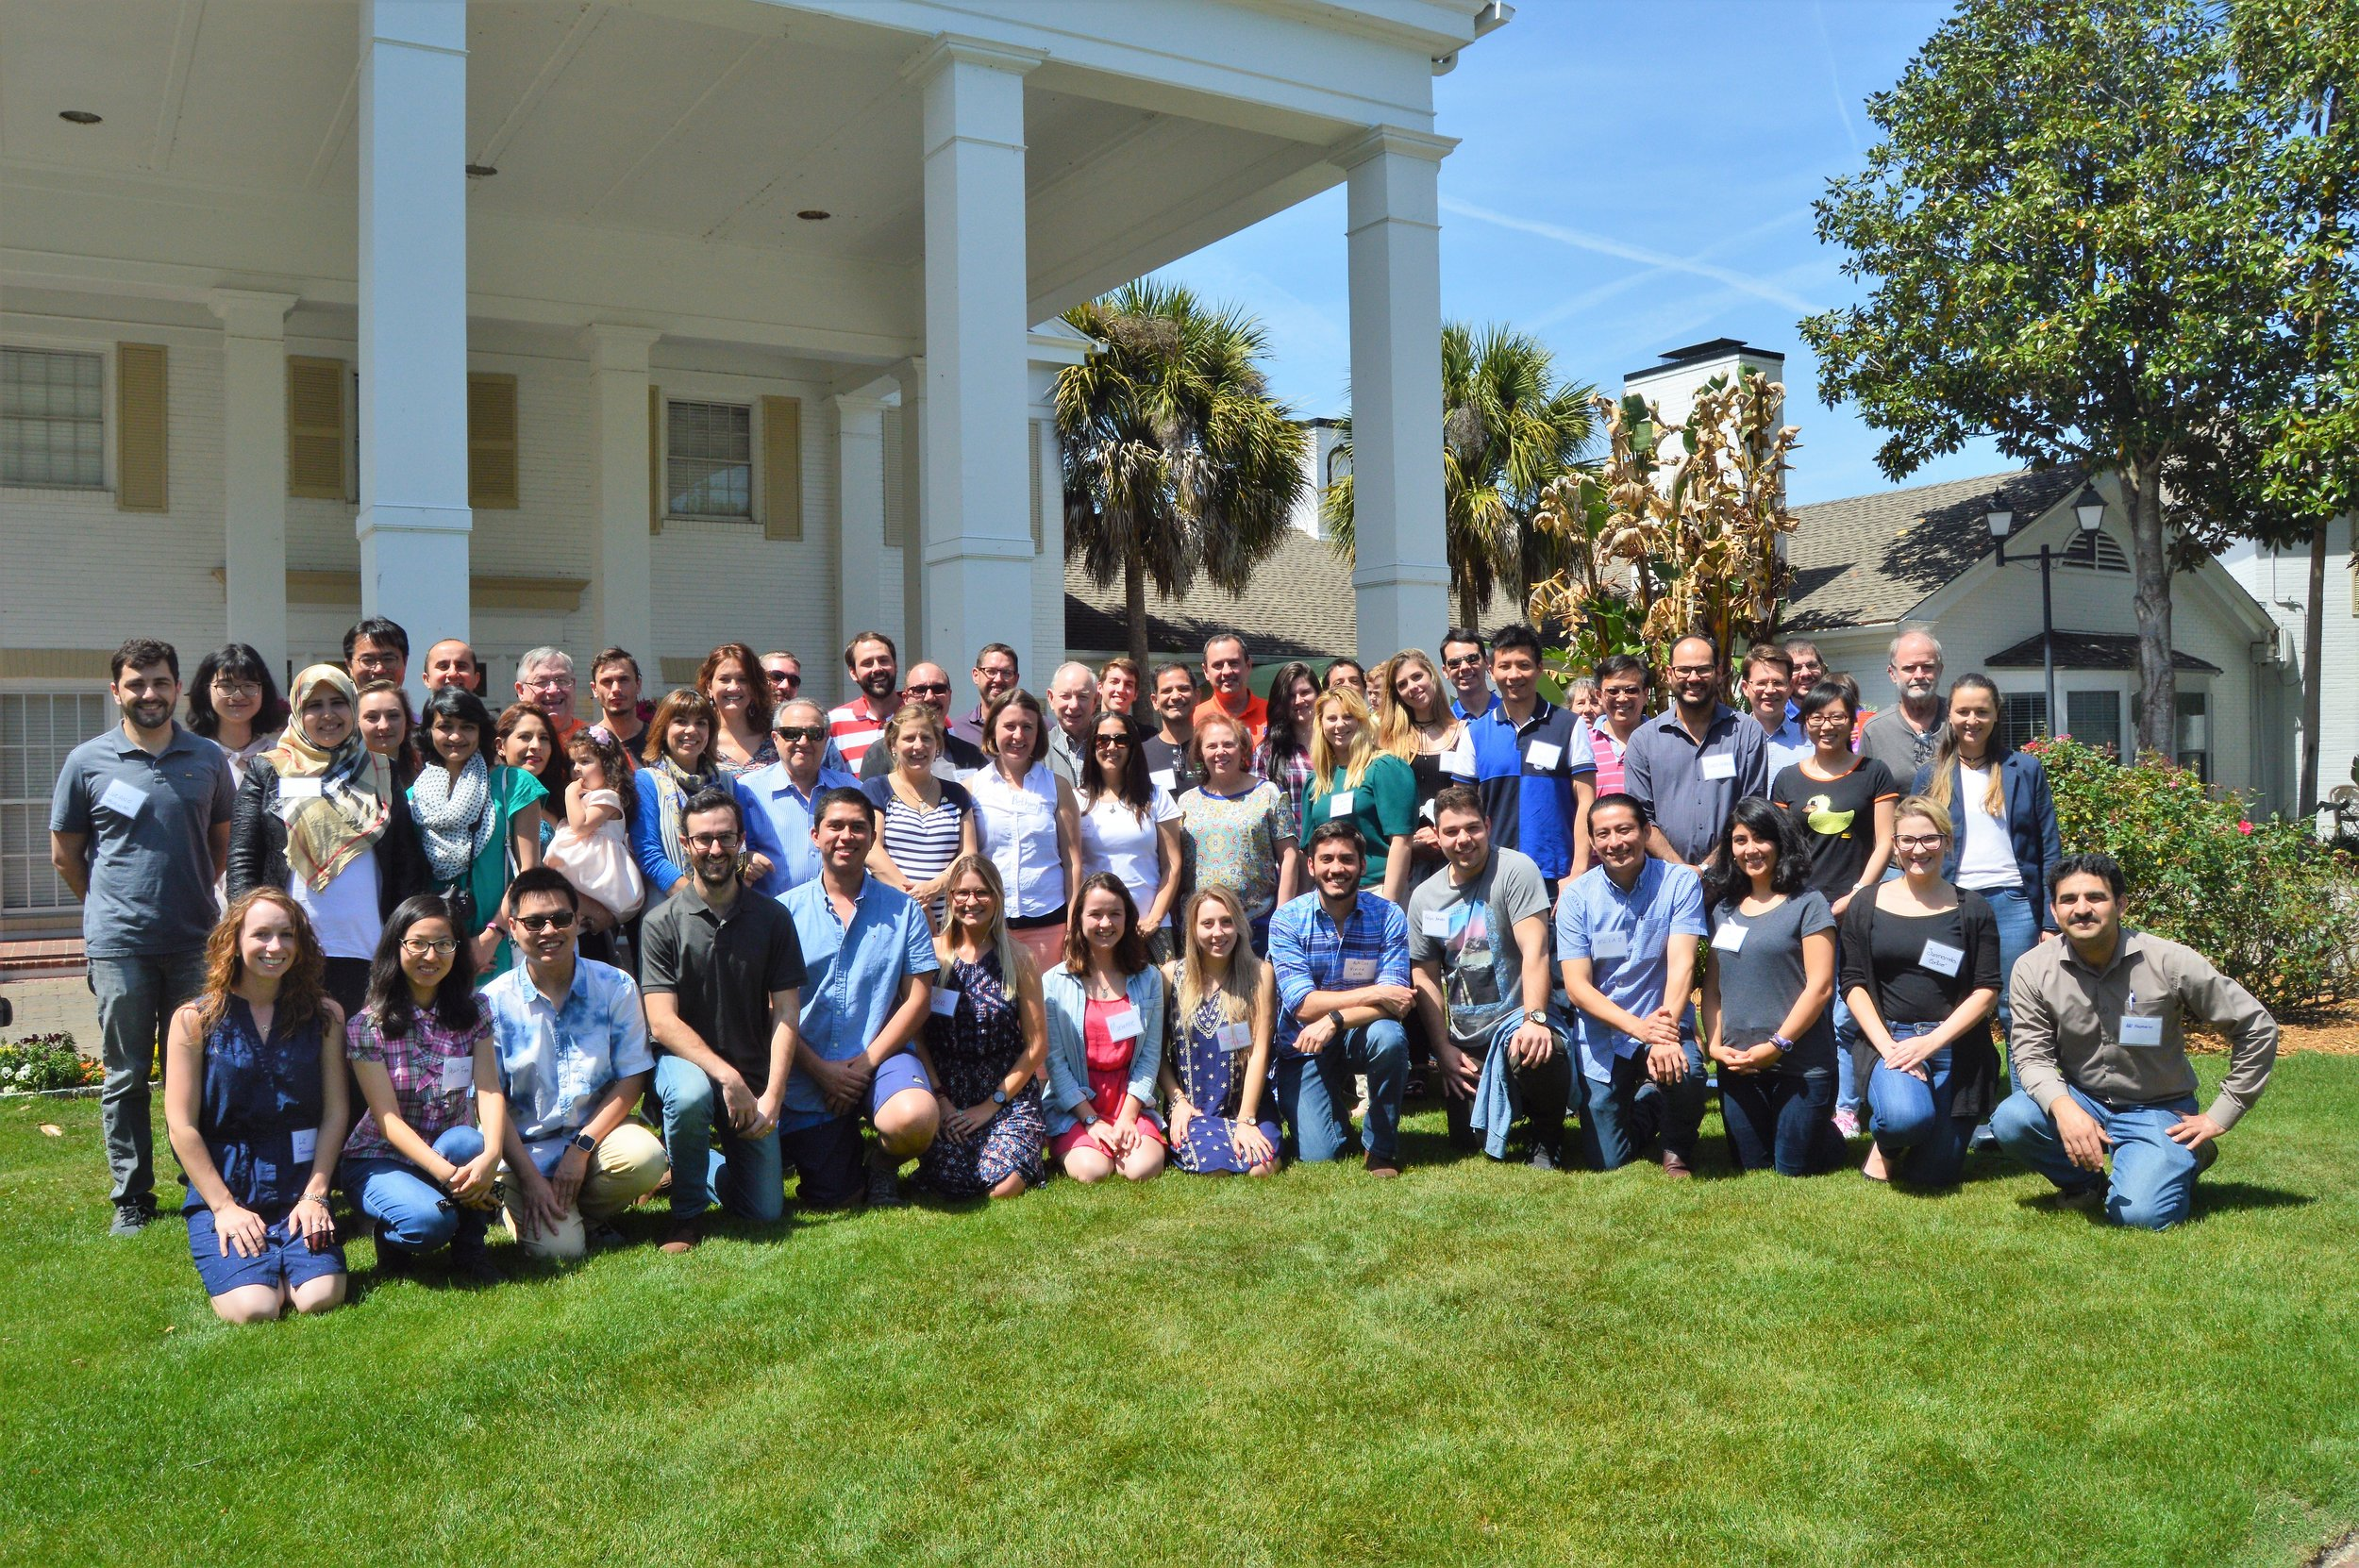 Chris traveled to Gainesville and then Crystal River Florida in April to speak at the 2018 Animal Molecular and Cellular Biology Retreat. Thanks to  Pete Hansen  and  John Bromfield  for hosting, it was a great time! Pictured above are the attendees in front of the conference center in Crystal River.